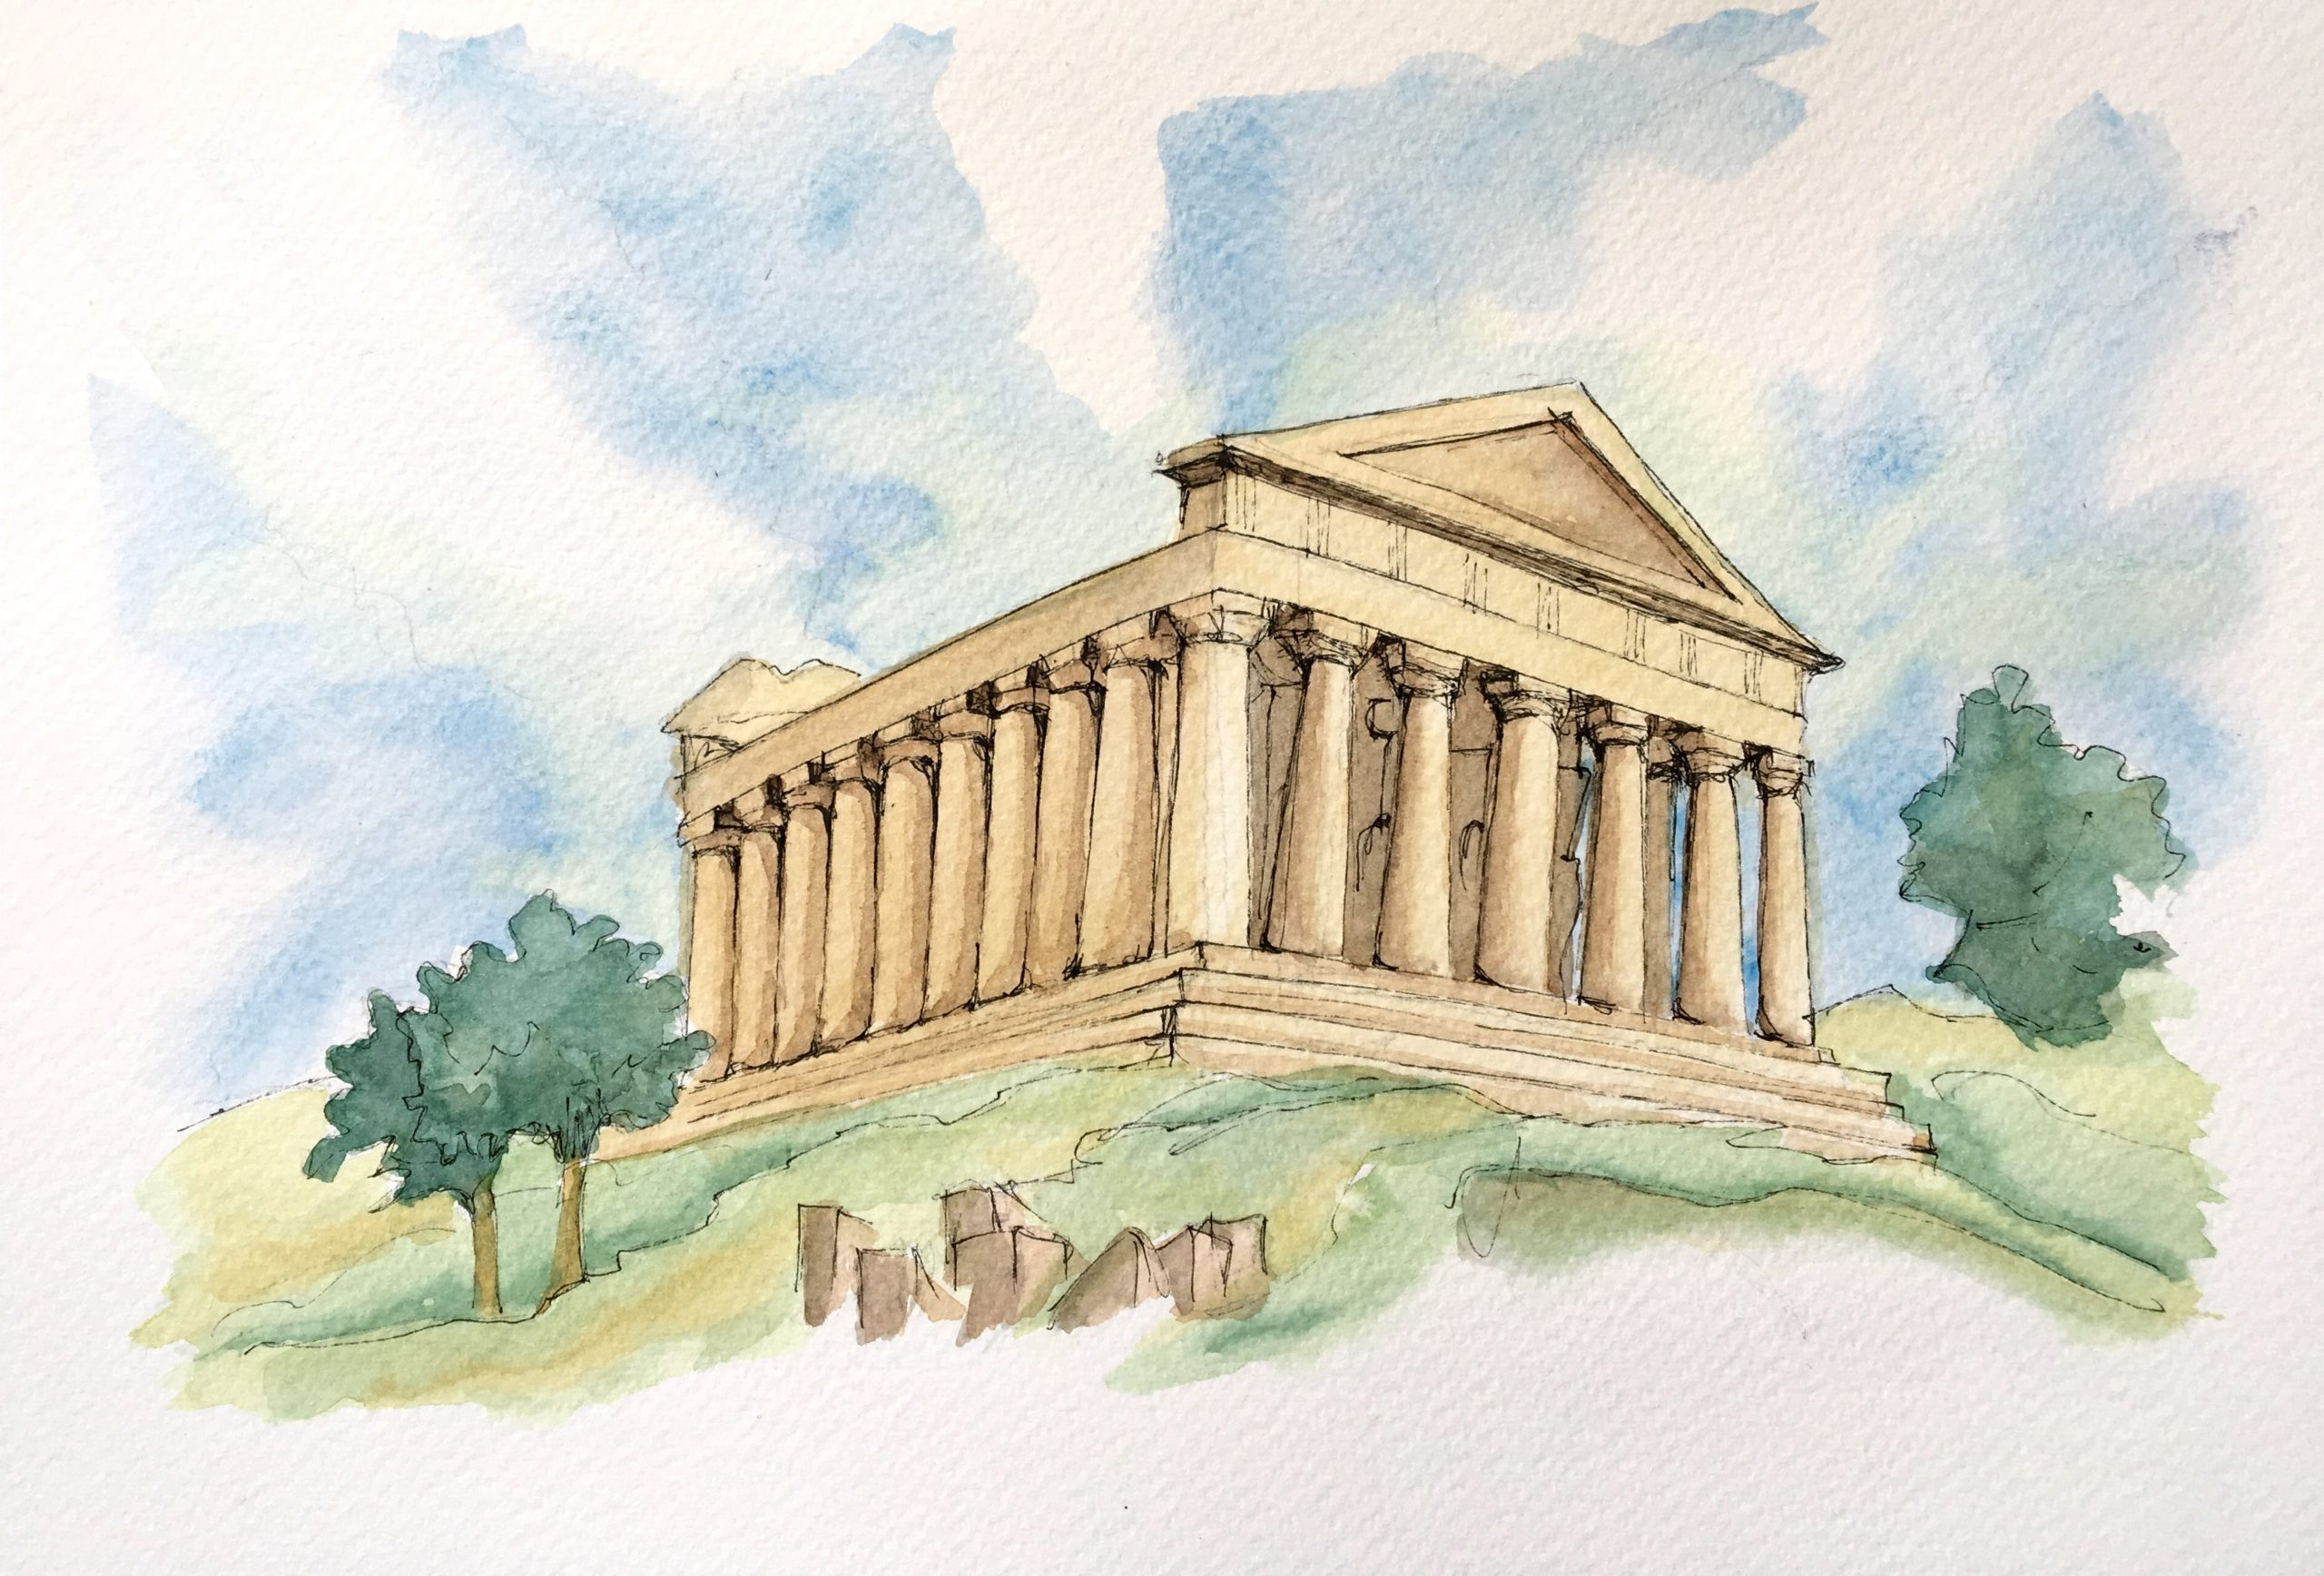 Painting of Valley of the Temples in Agrigento